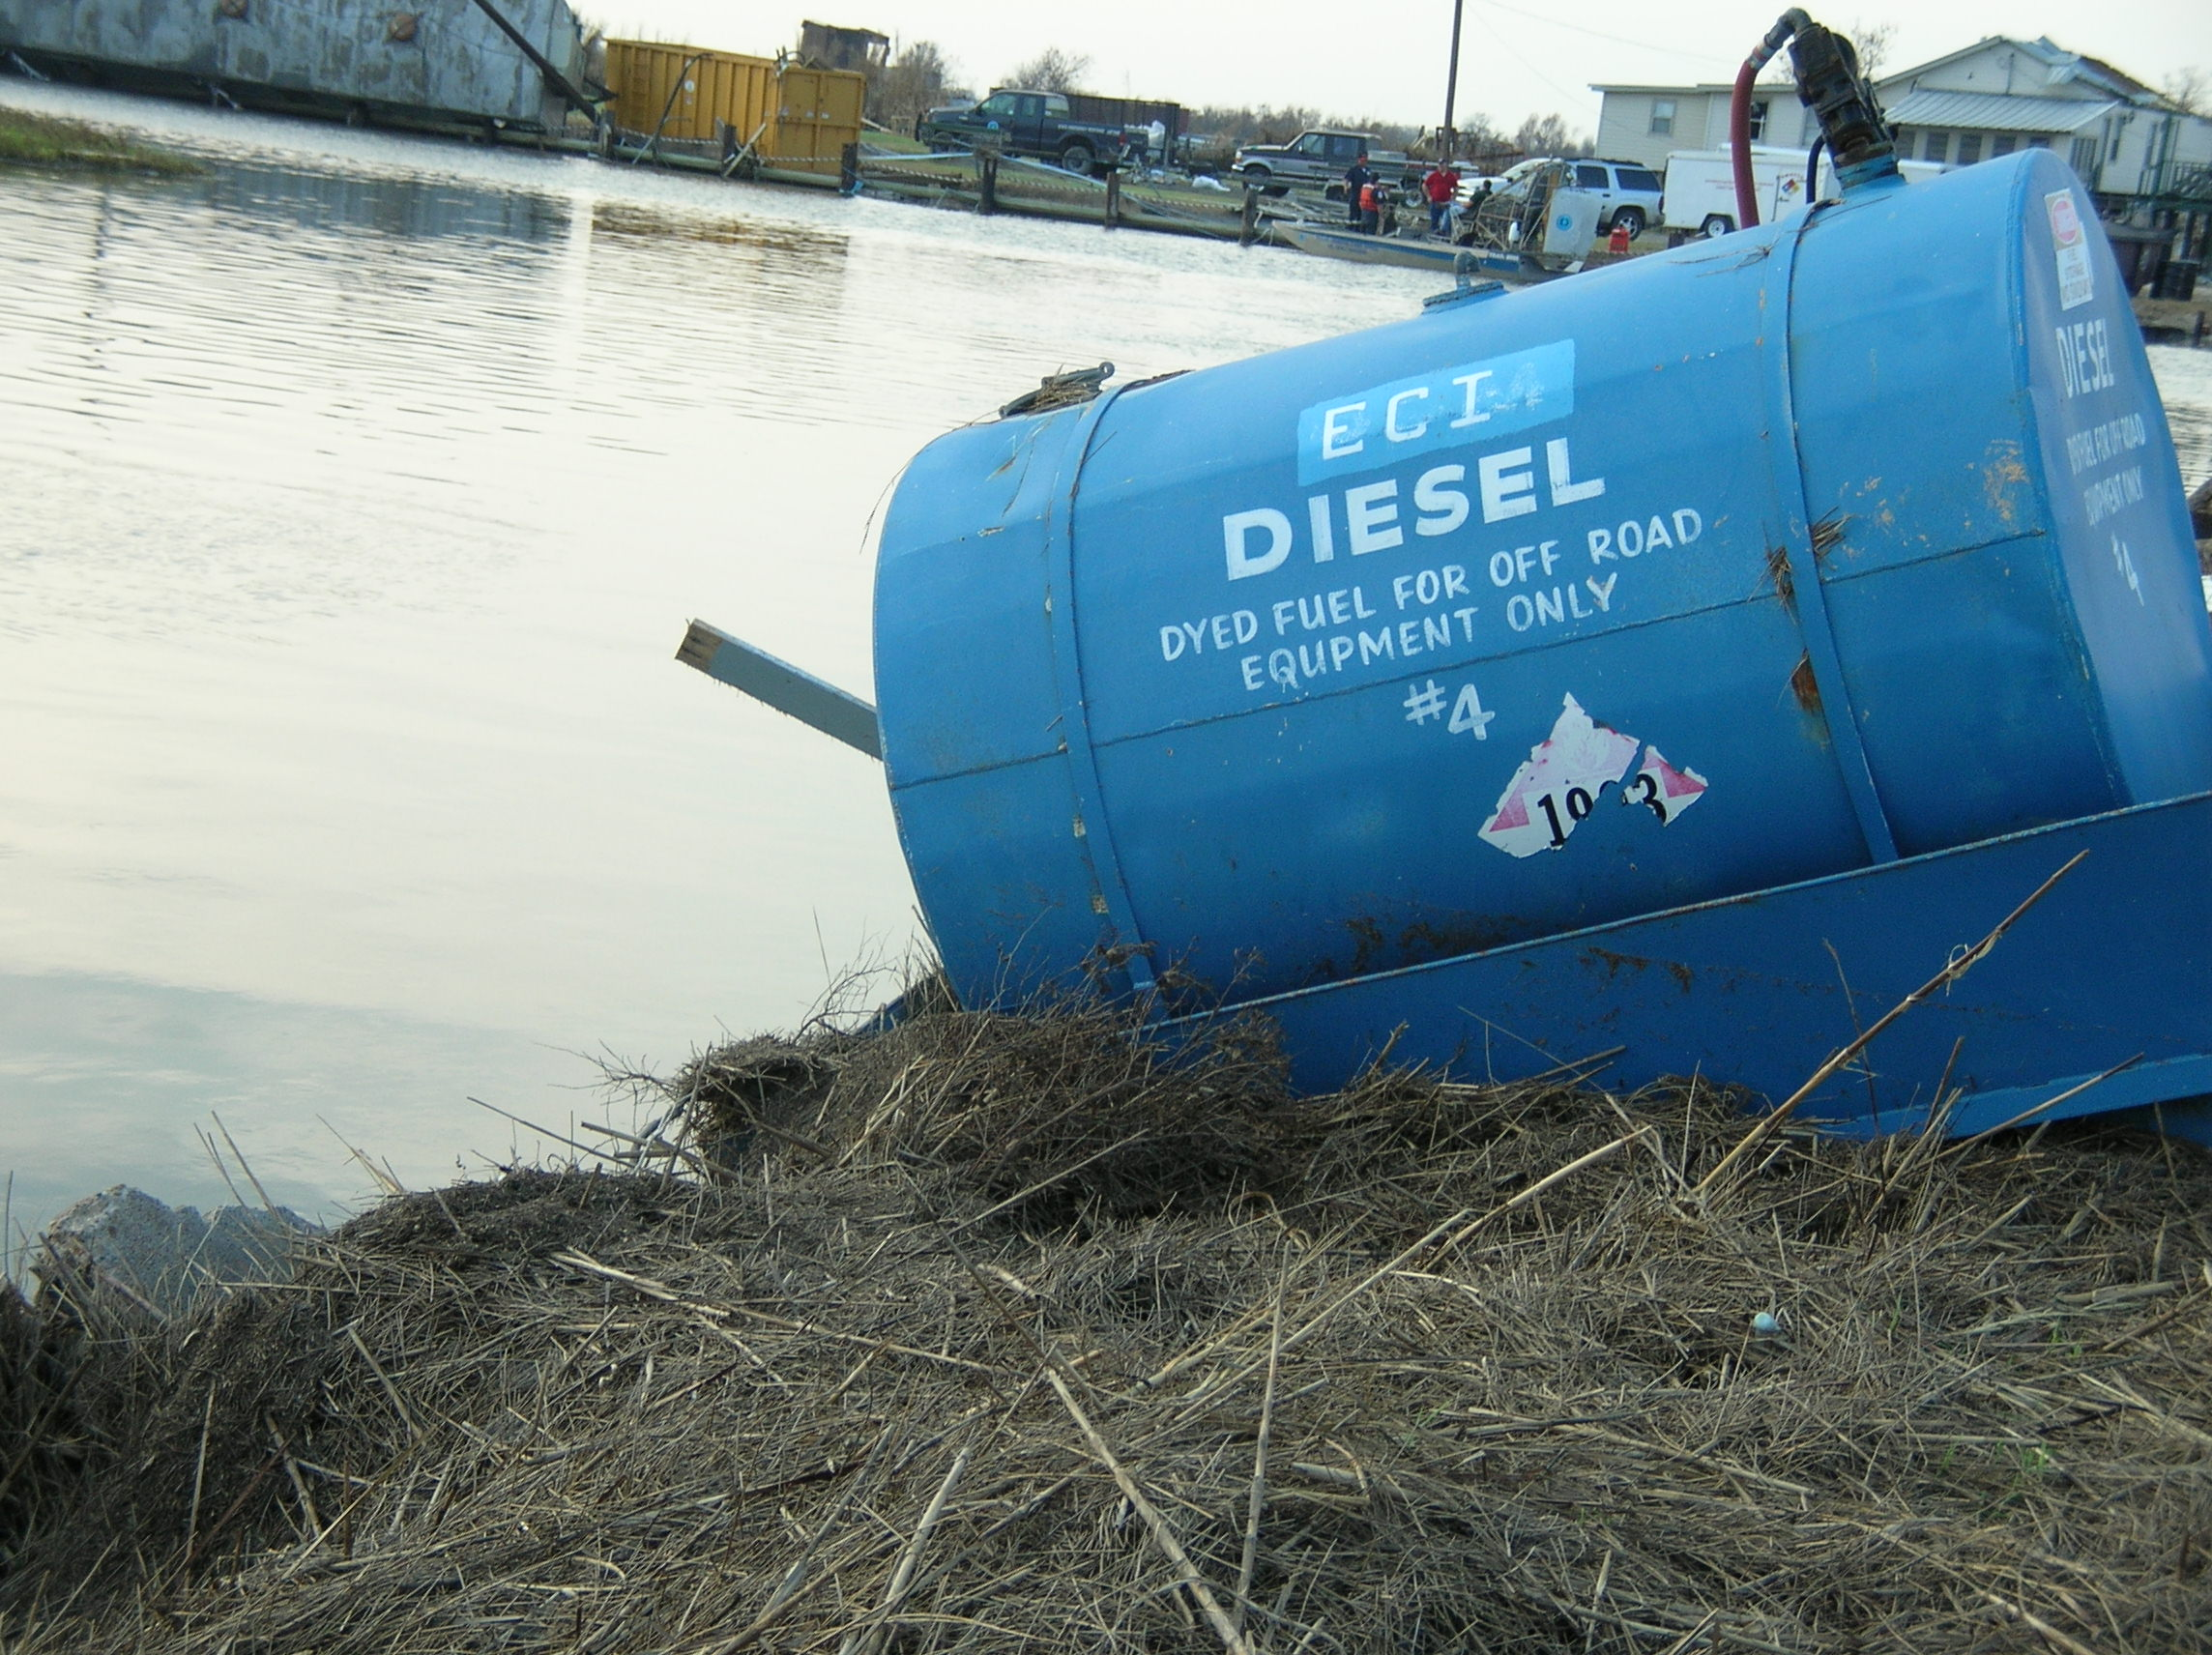 Diesel container on an embankment next to water.